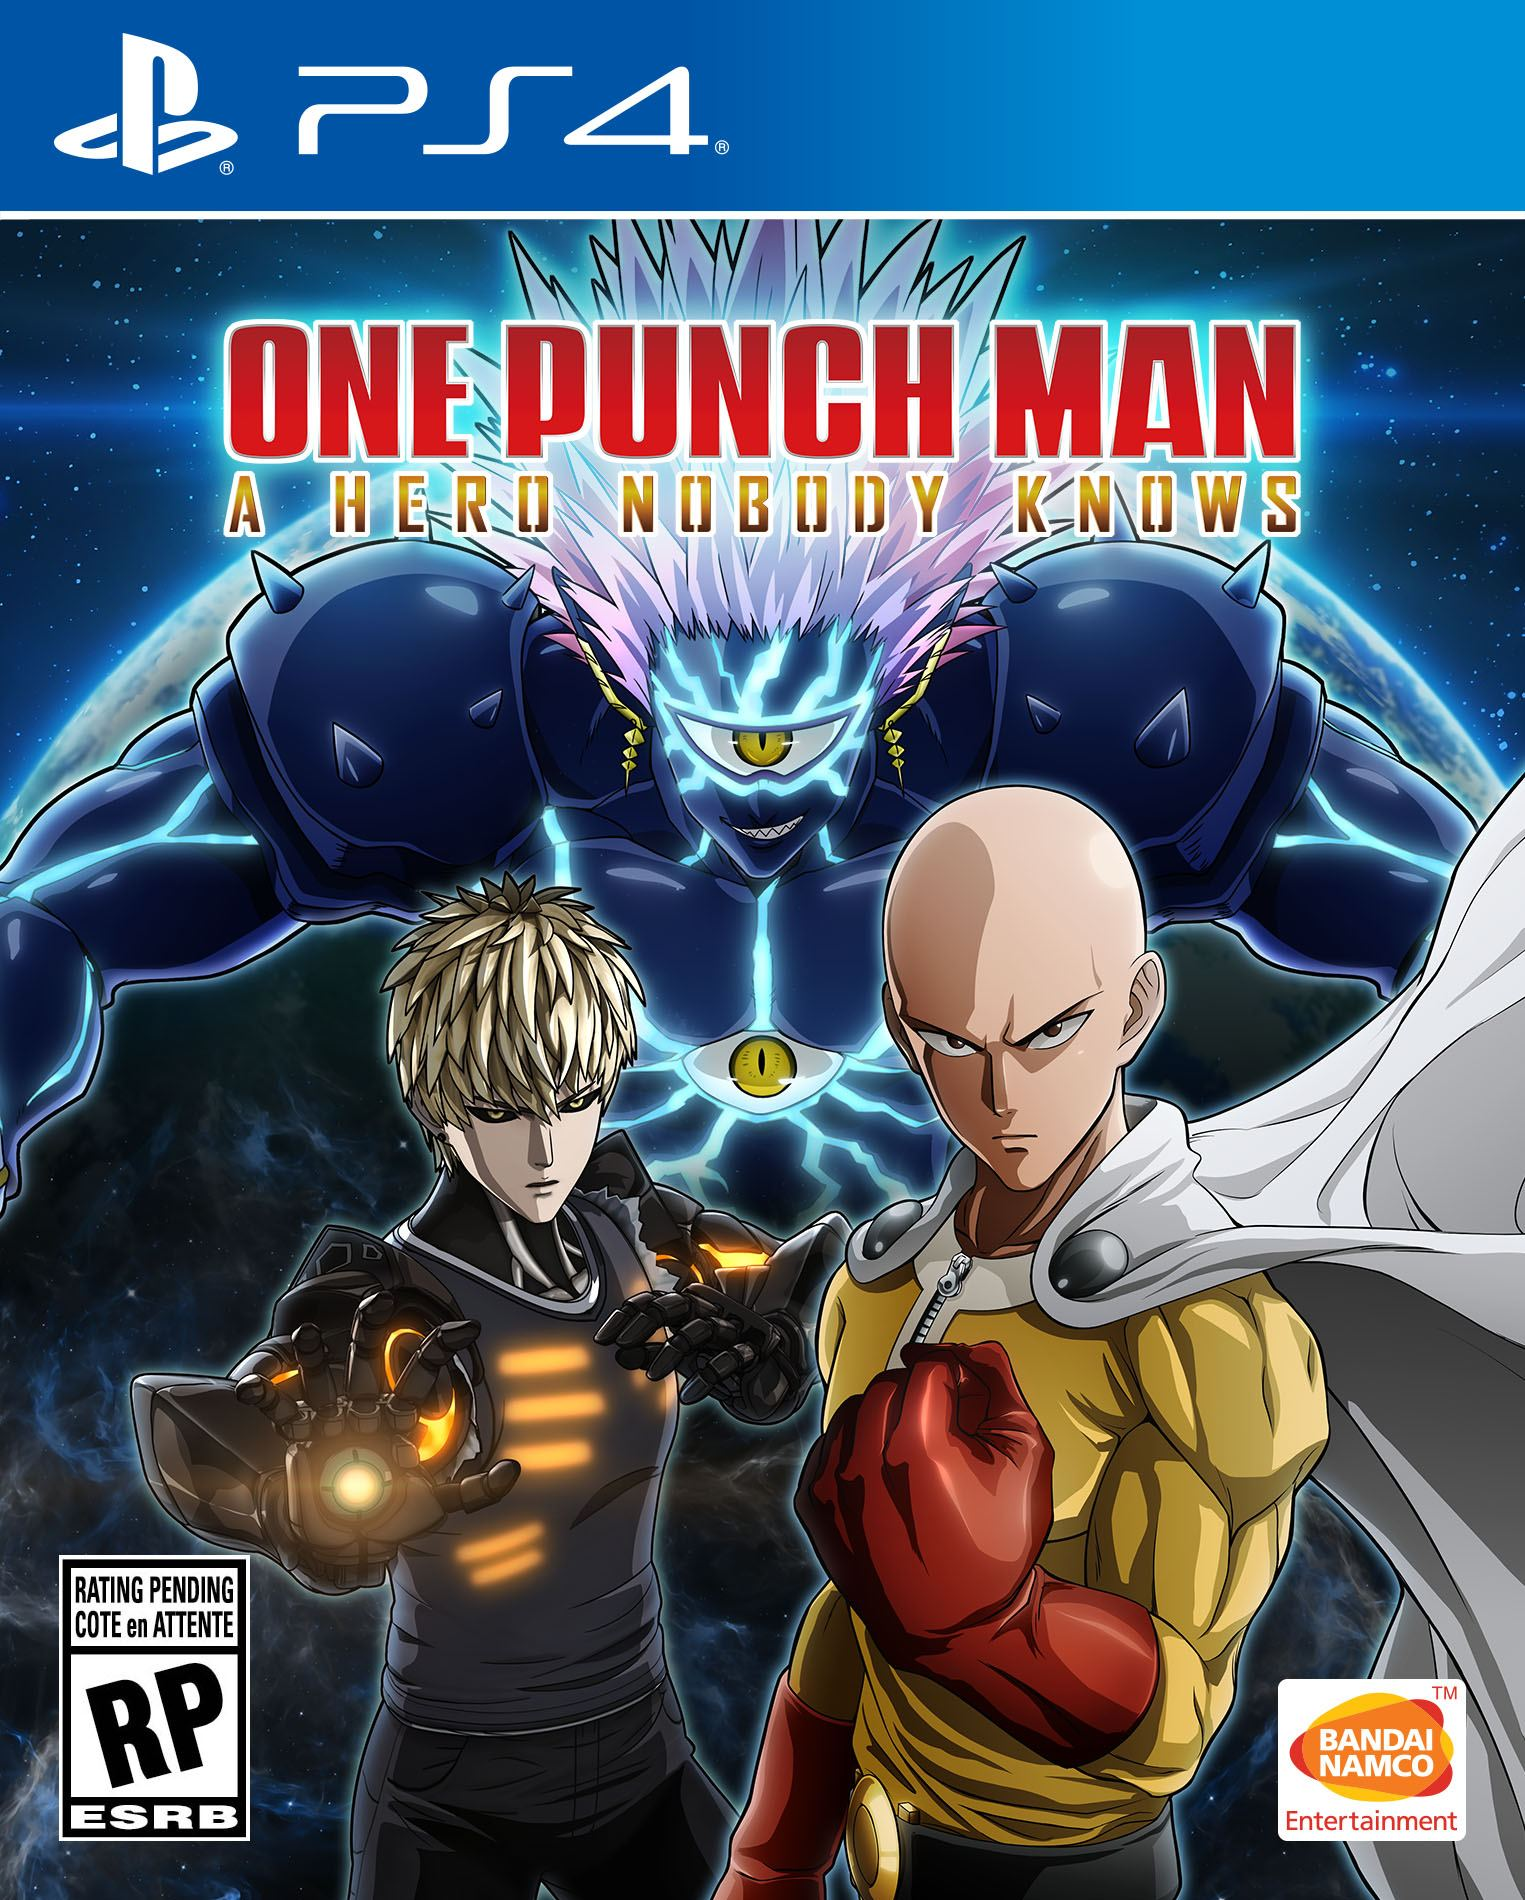 One Punch Man A Hero Nobody Knows (34)